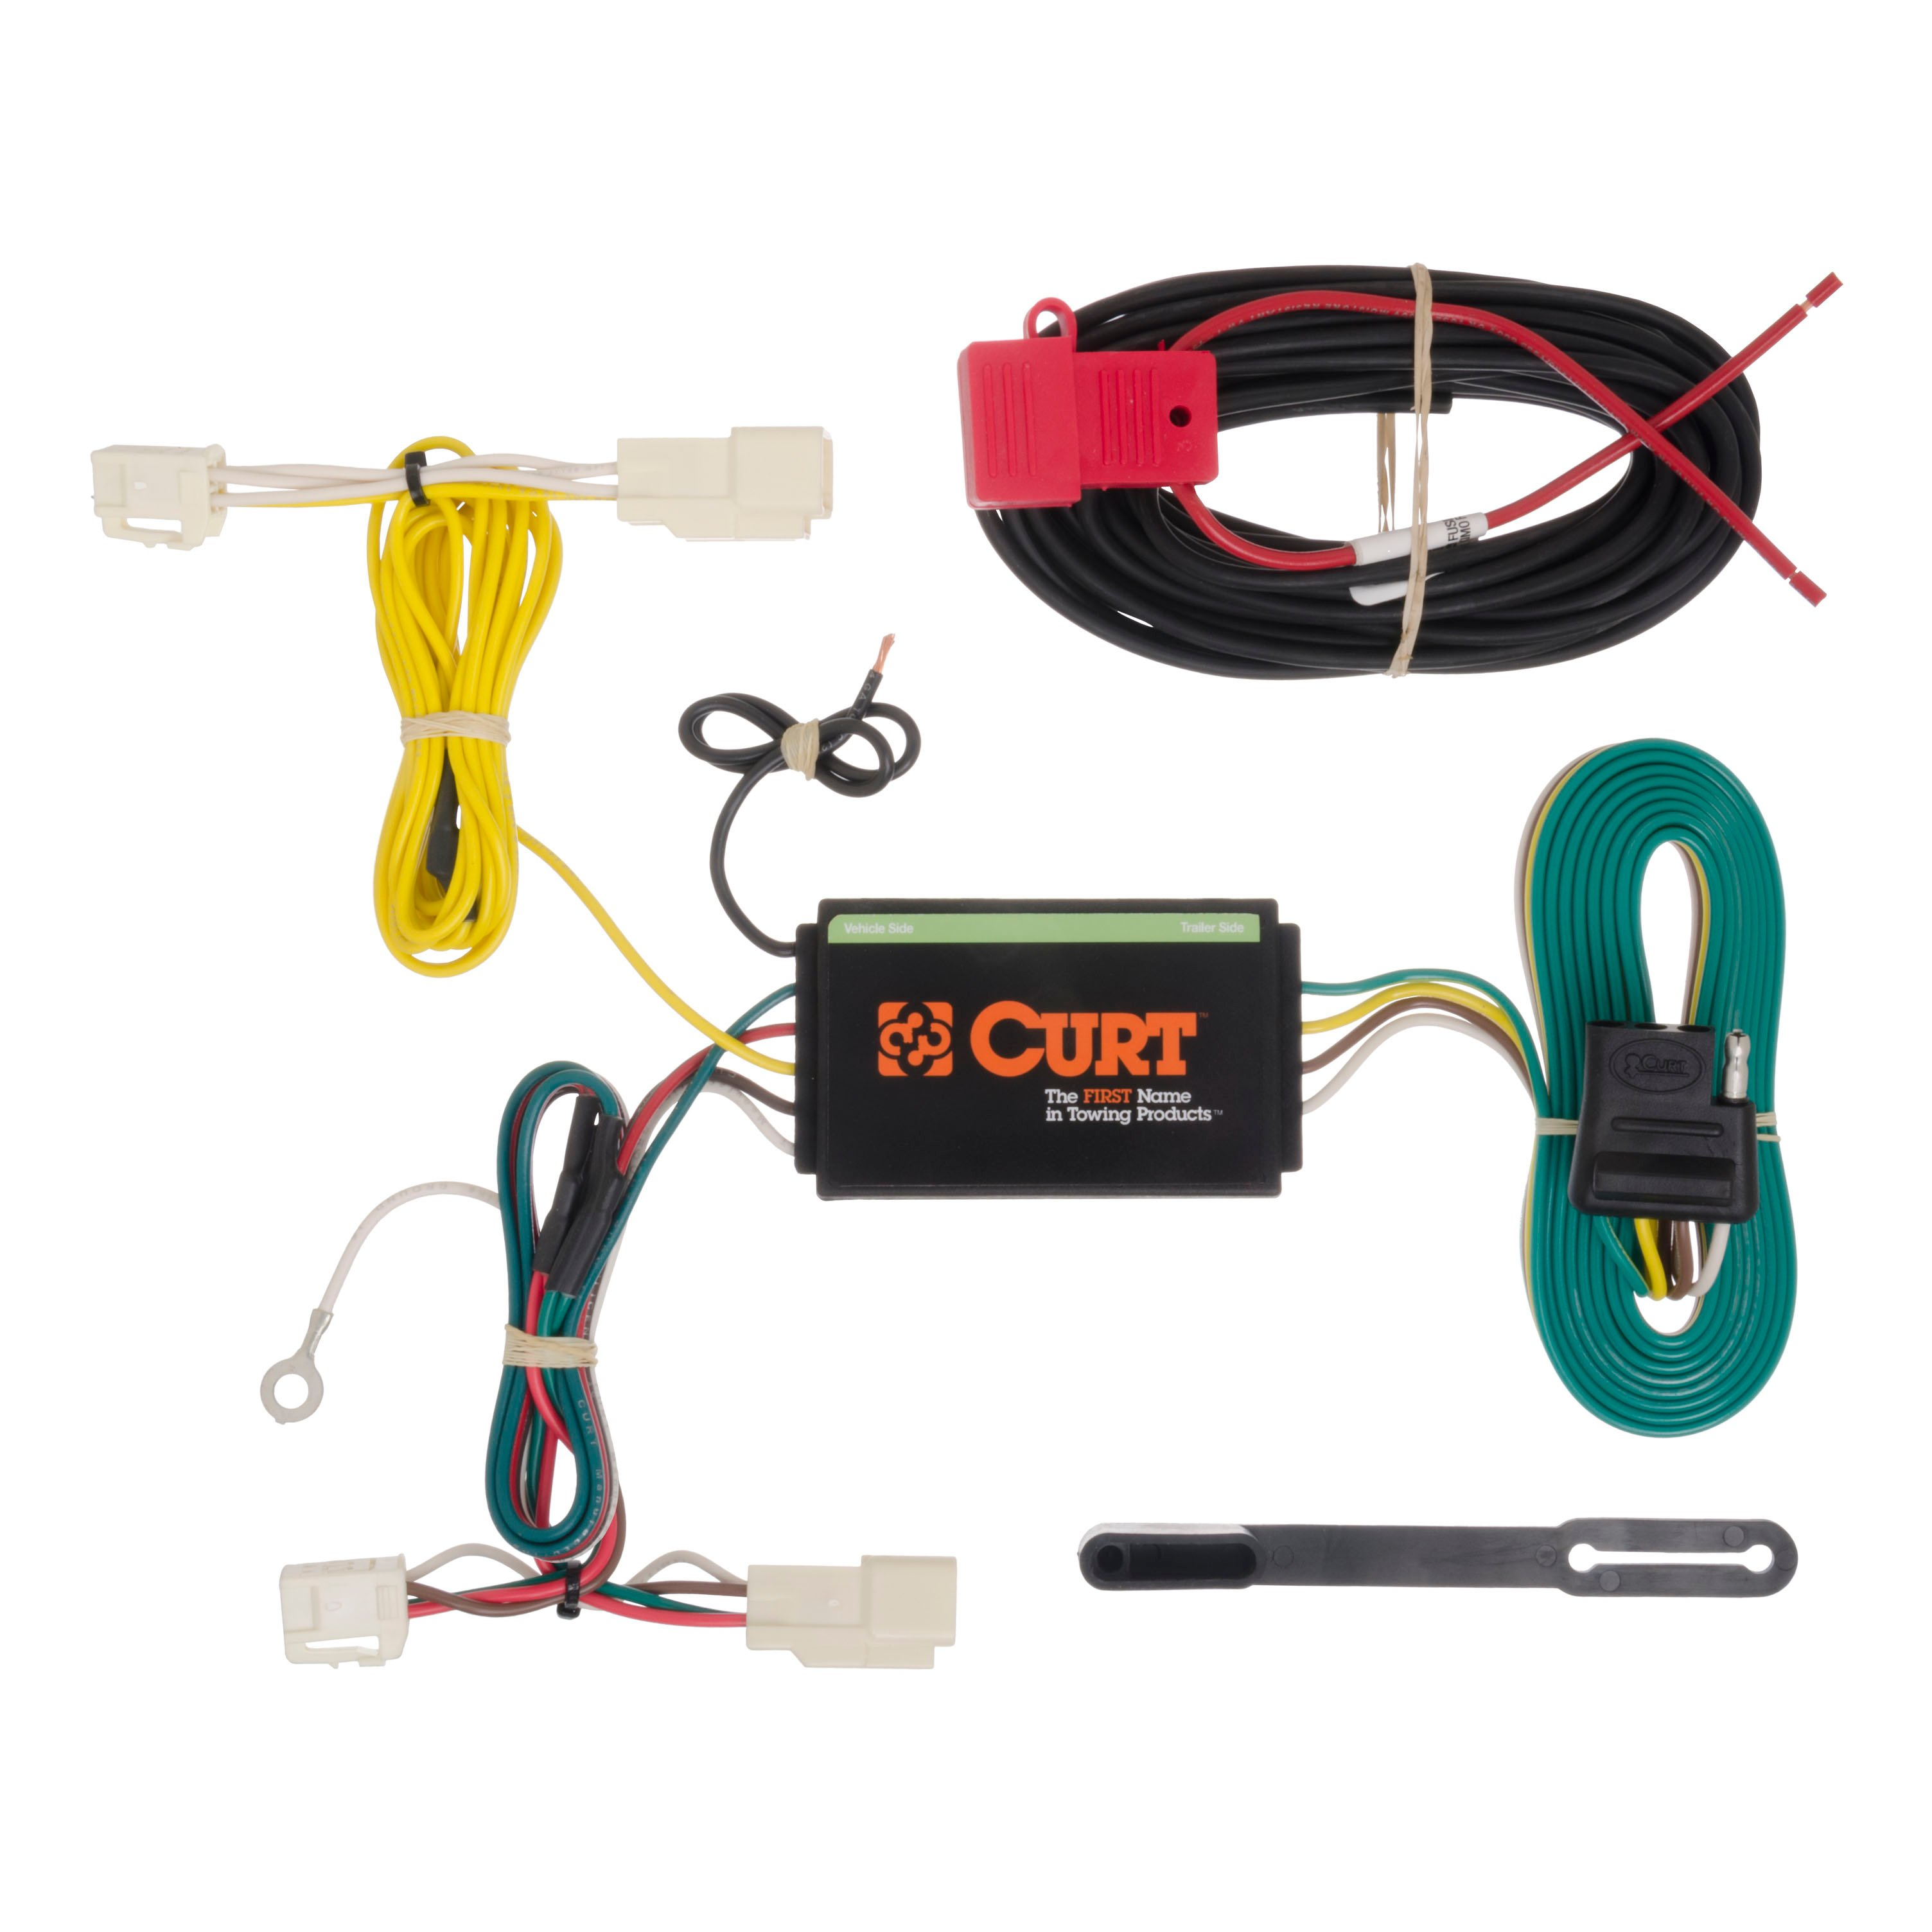 details about curt custom vehicle to trailer wiring harness 56182 for 2012 lexus ls460 gmc trailer wiring harness diagram vehicle trailer wiring harness #15